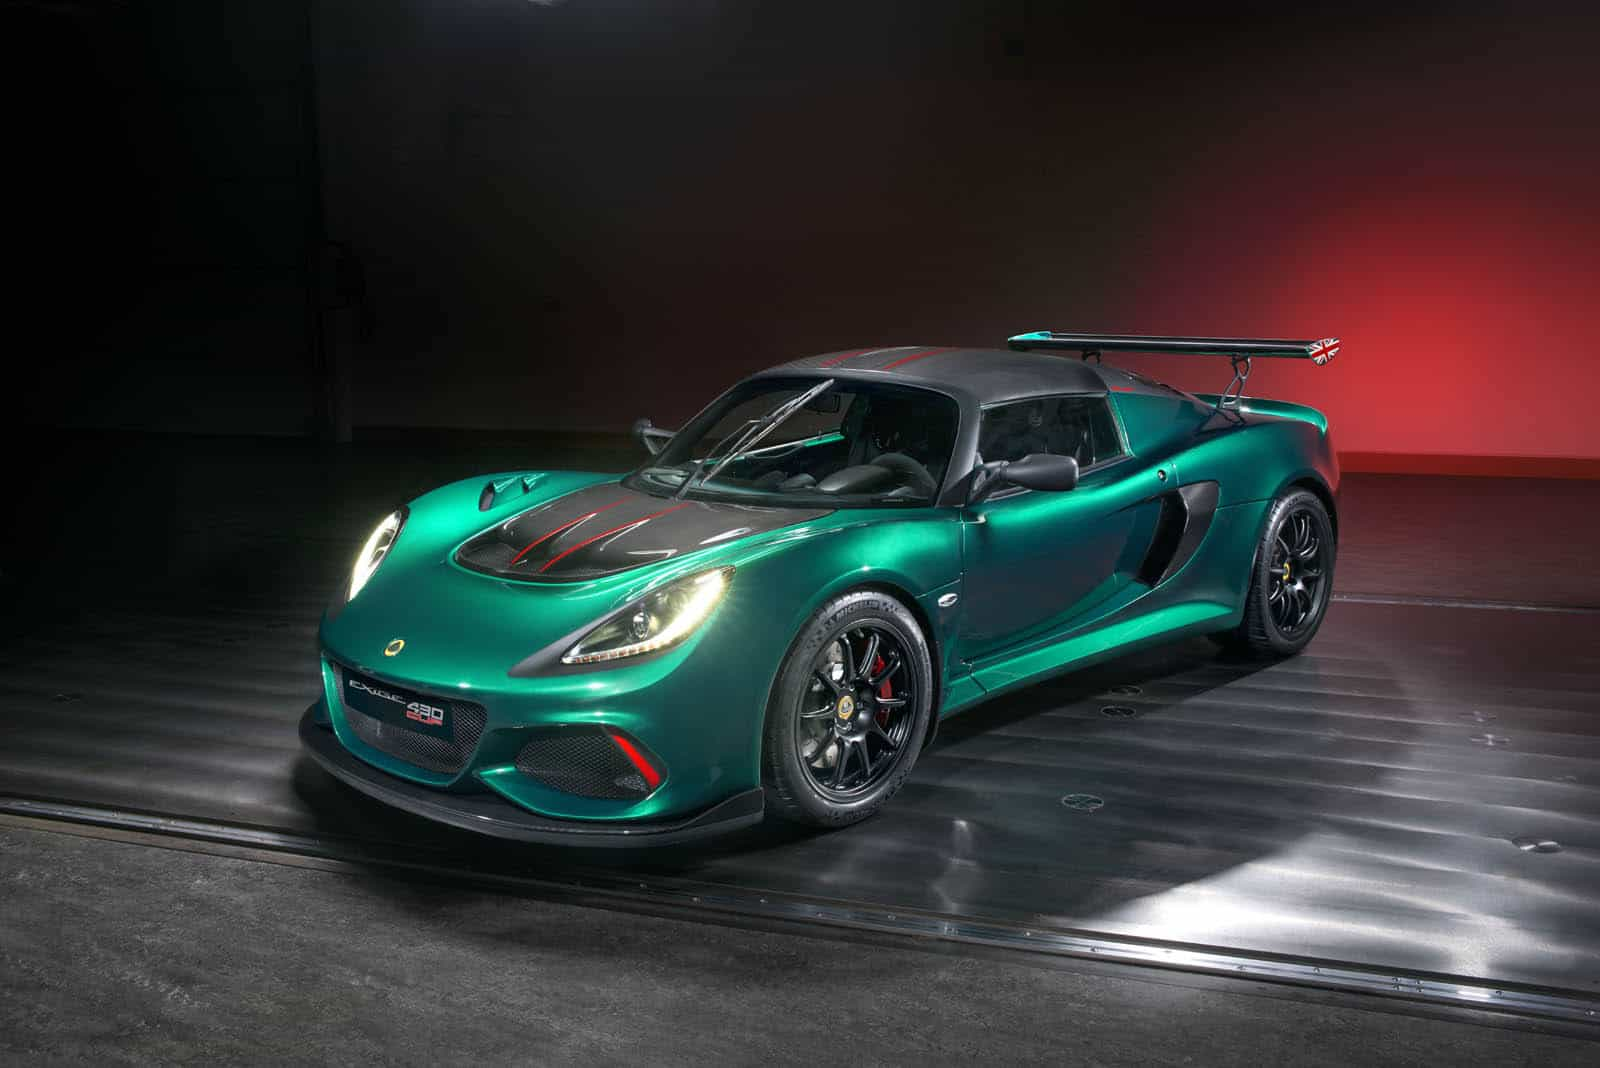 The New Lotus Exige Cup 430 Is the Most Extreme Exige Ever Conceived